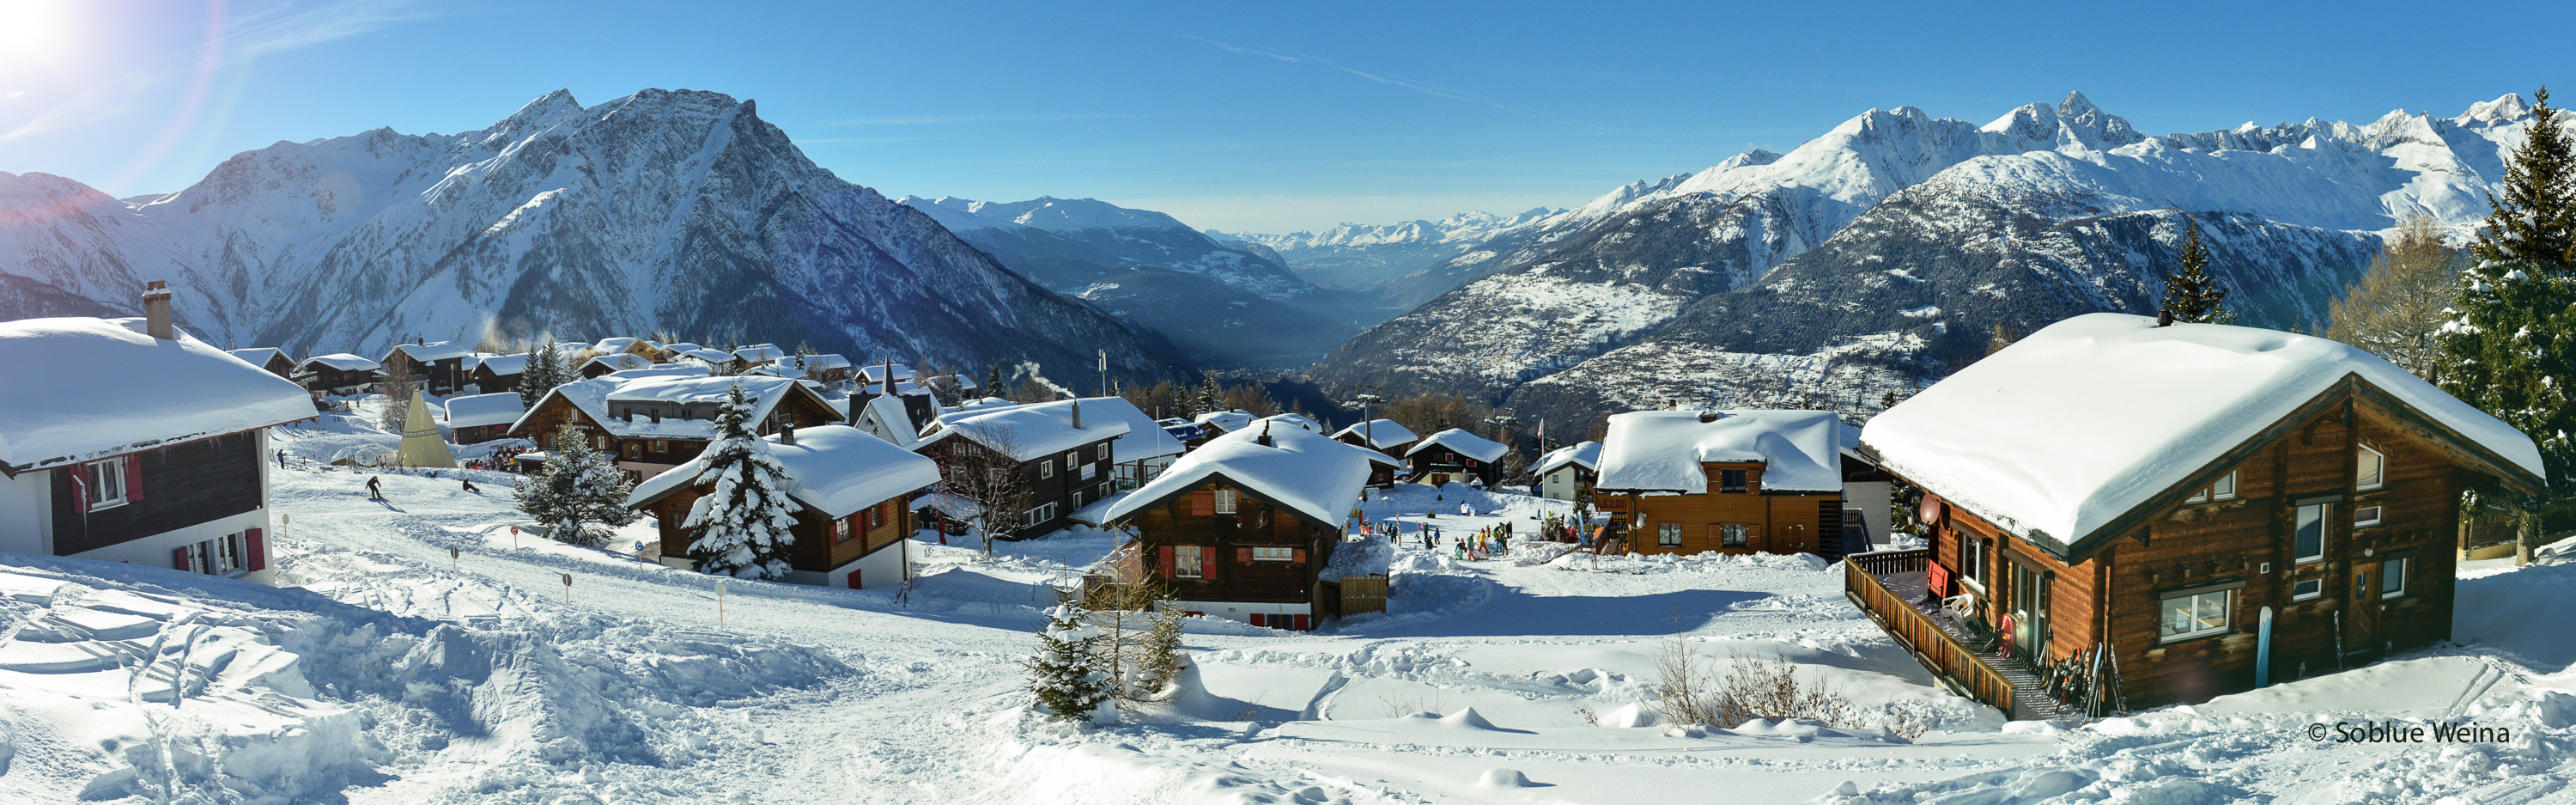 Rosswald in Winter, Valais